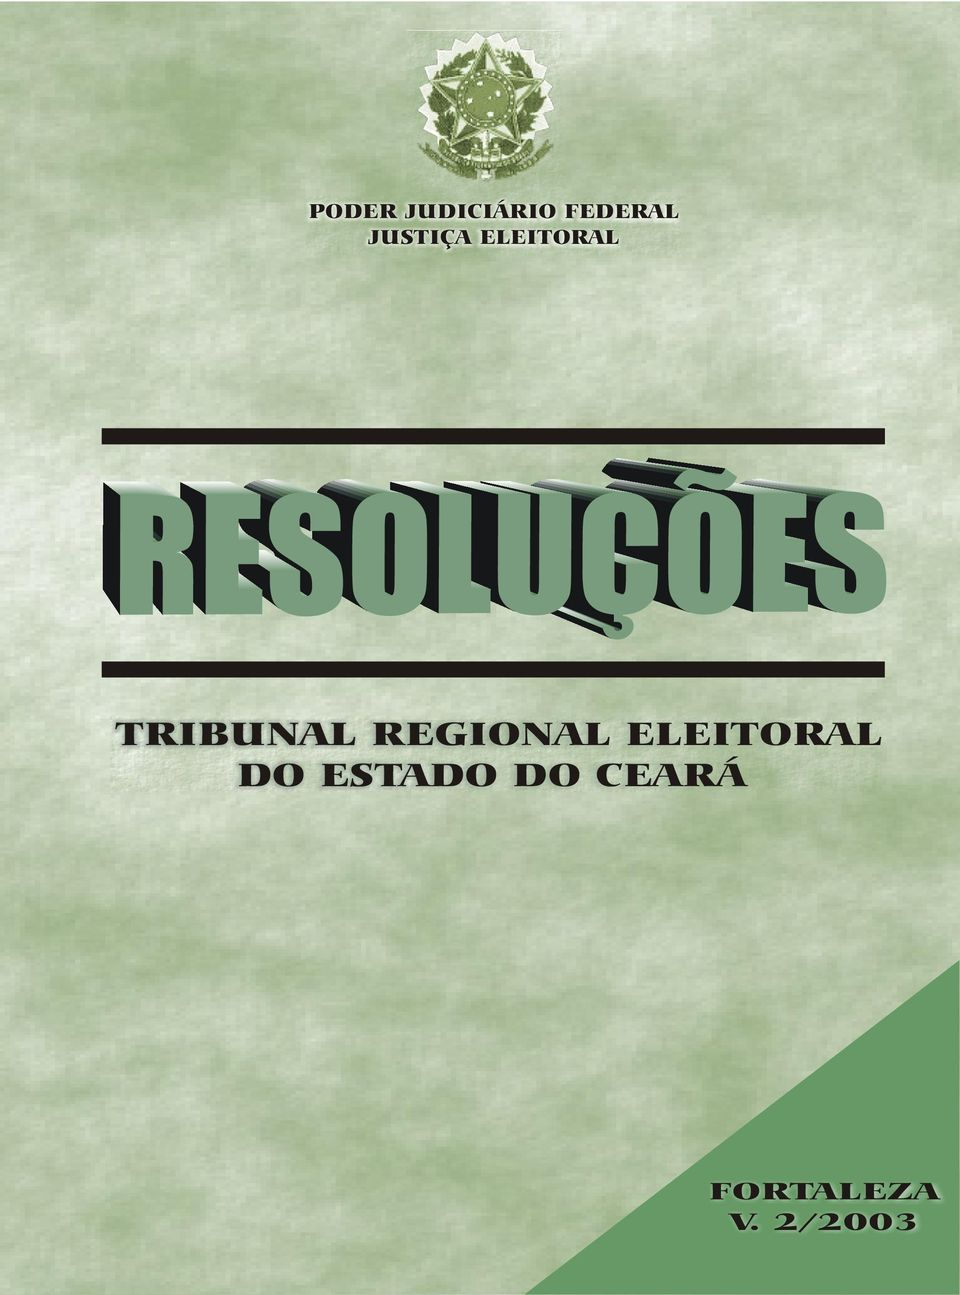 REGIONAL ELEITORAL DO